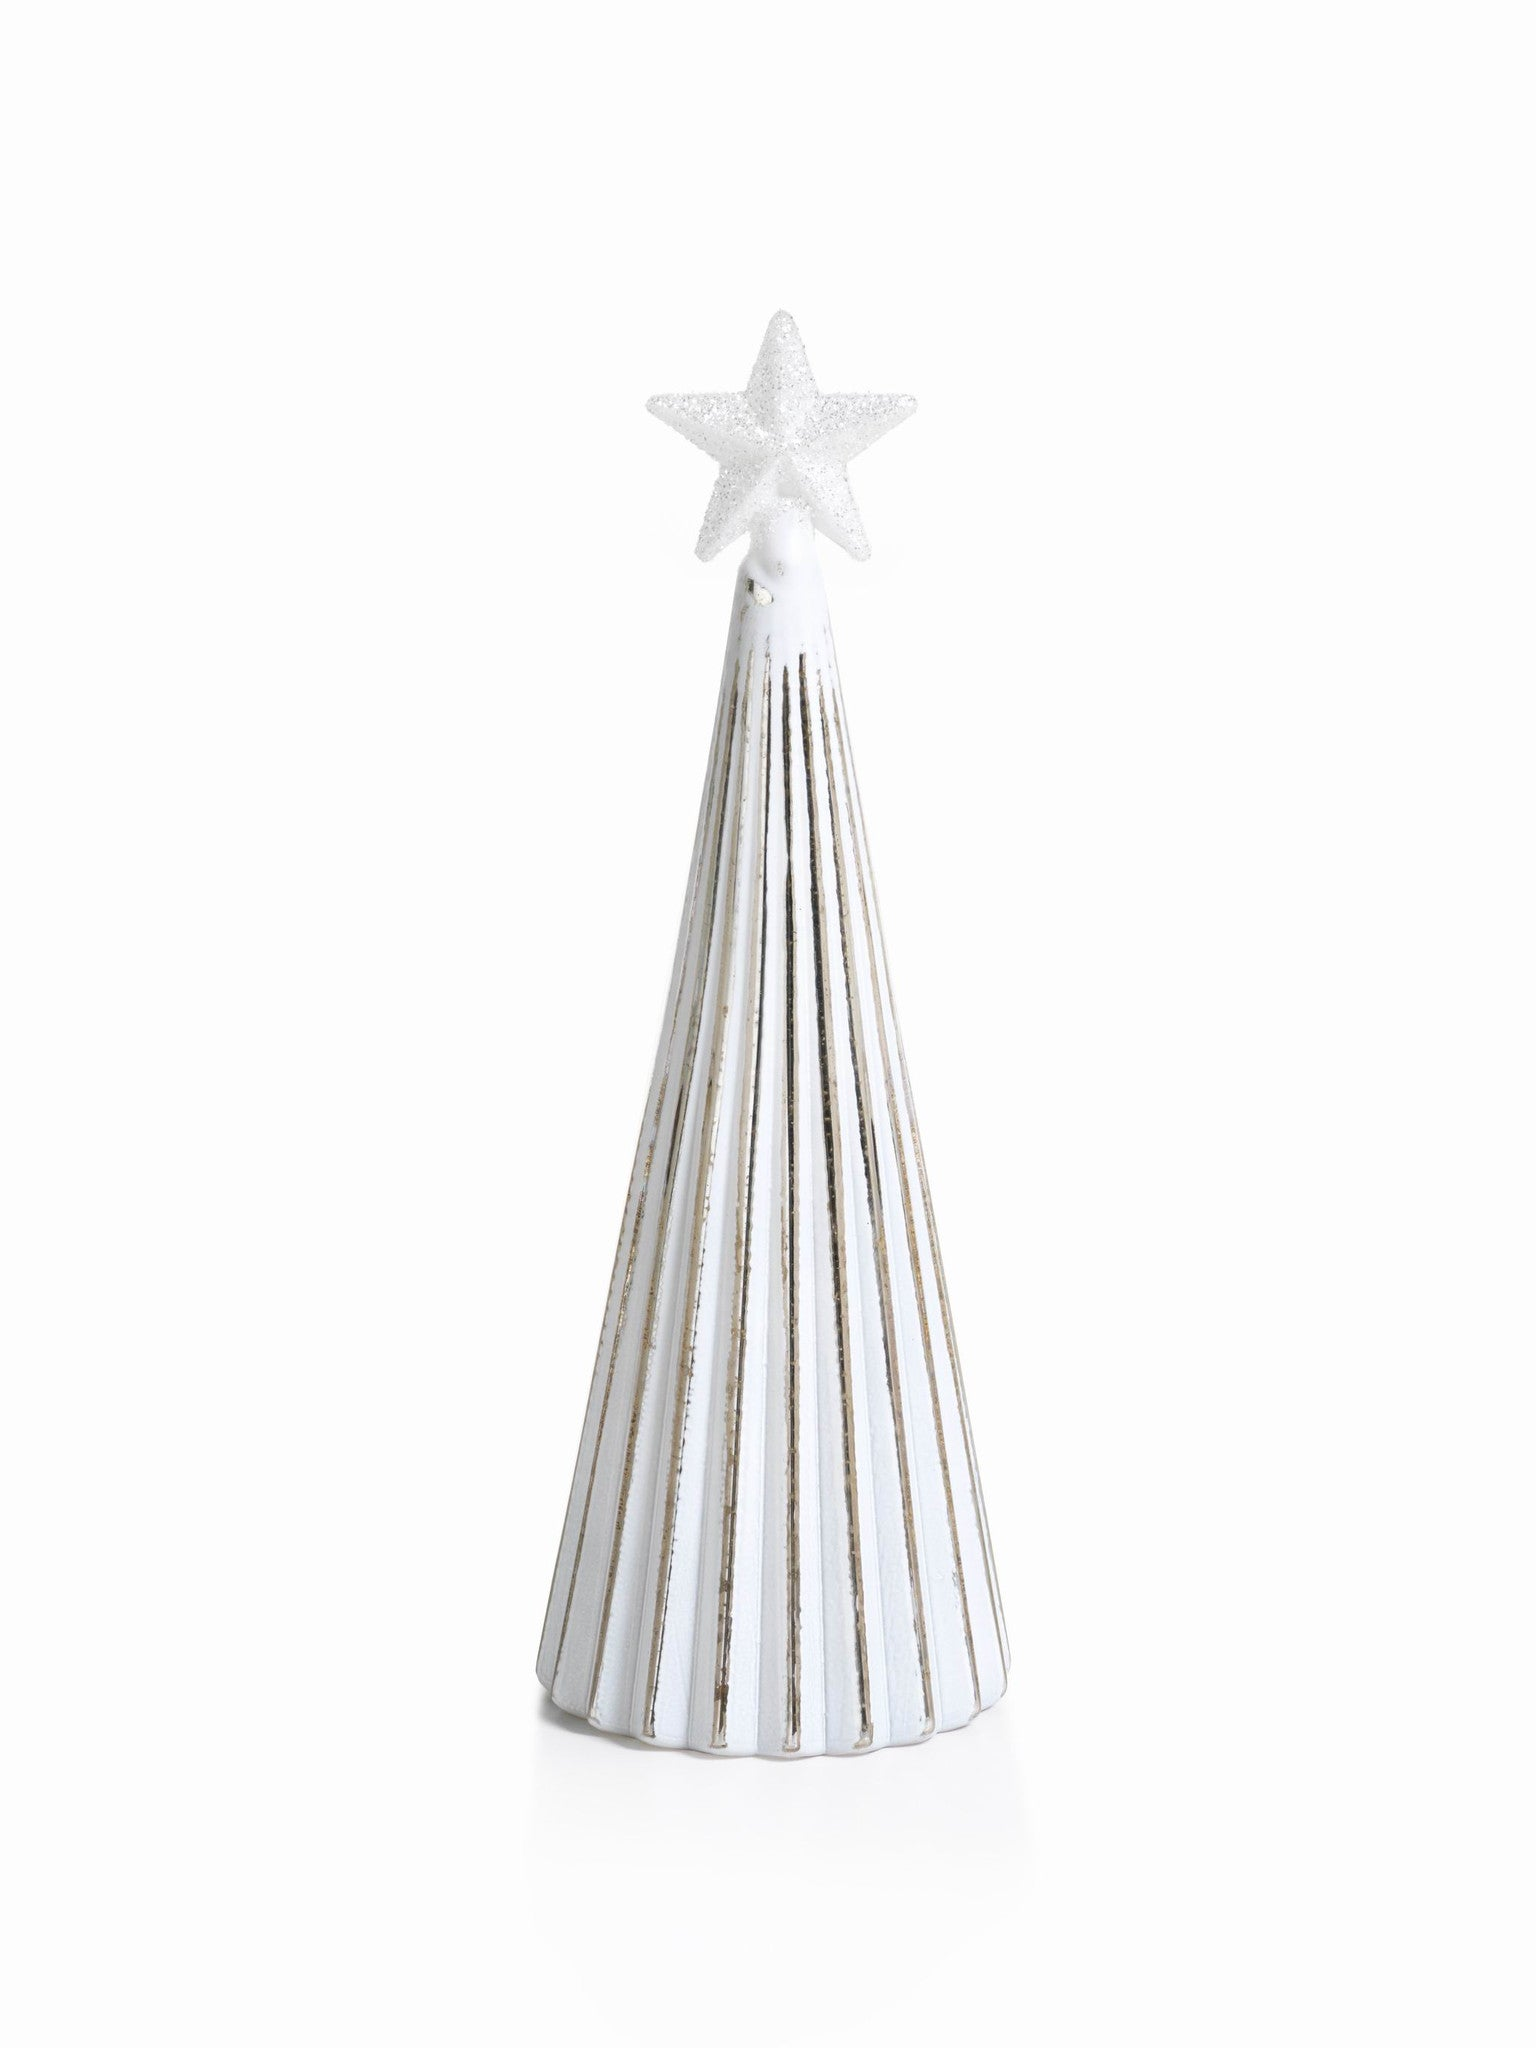 LED Glass Decorative Tree - Silver - Set of 6 - Large / Straight Line - CARLYLE AVENUE - 13